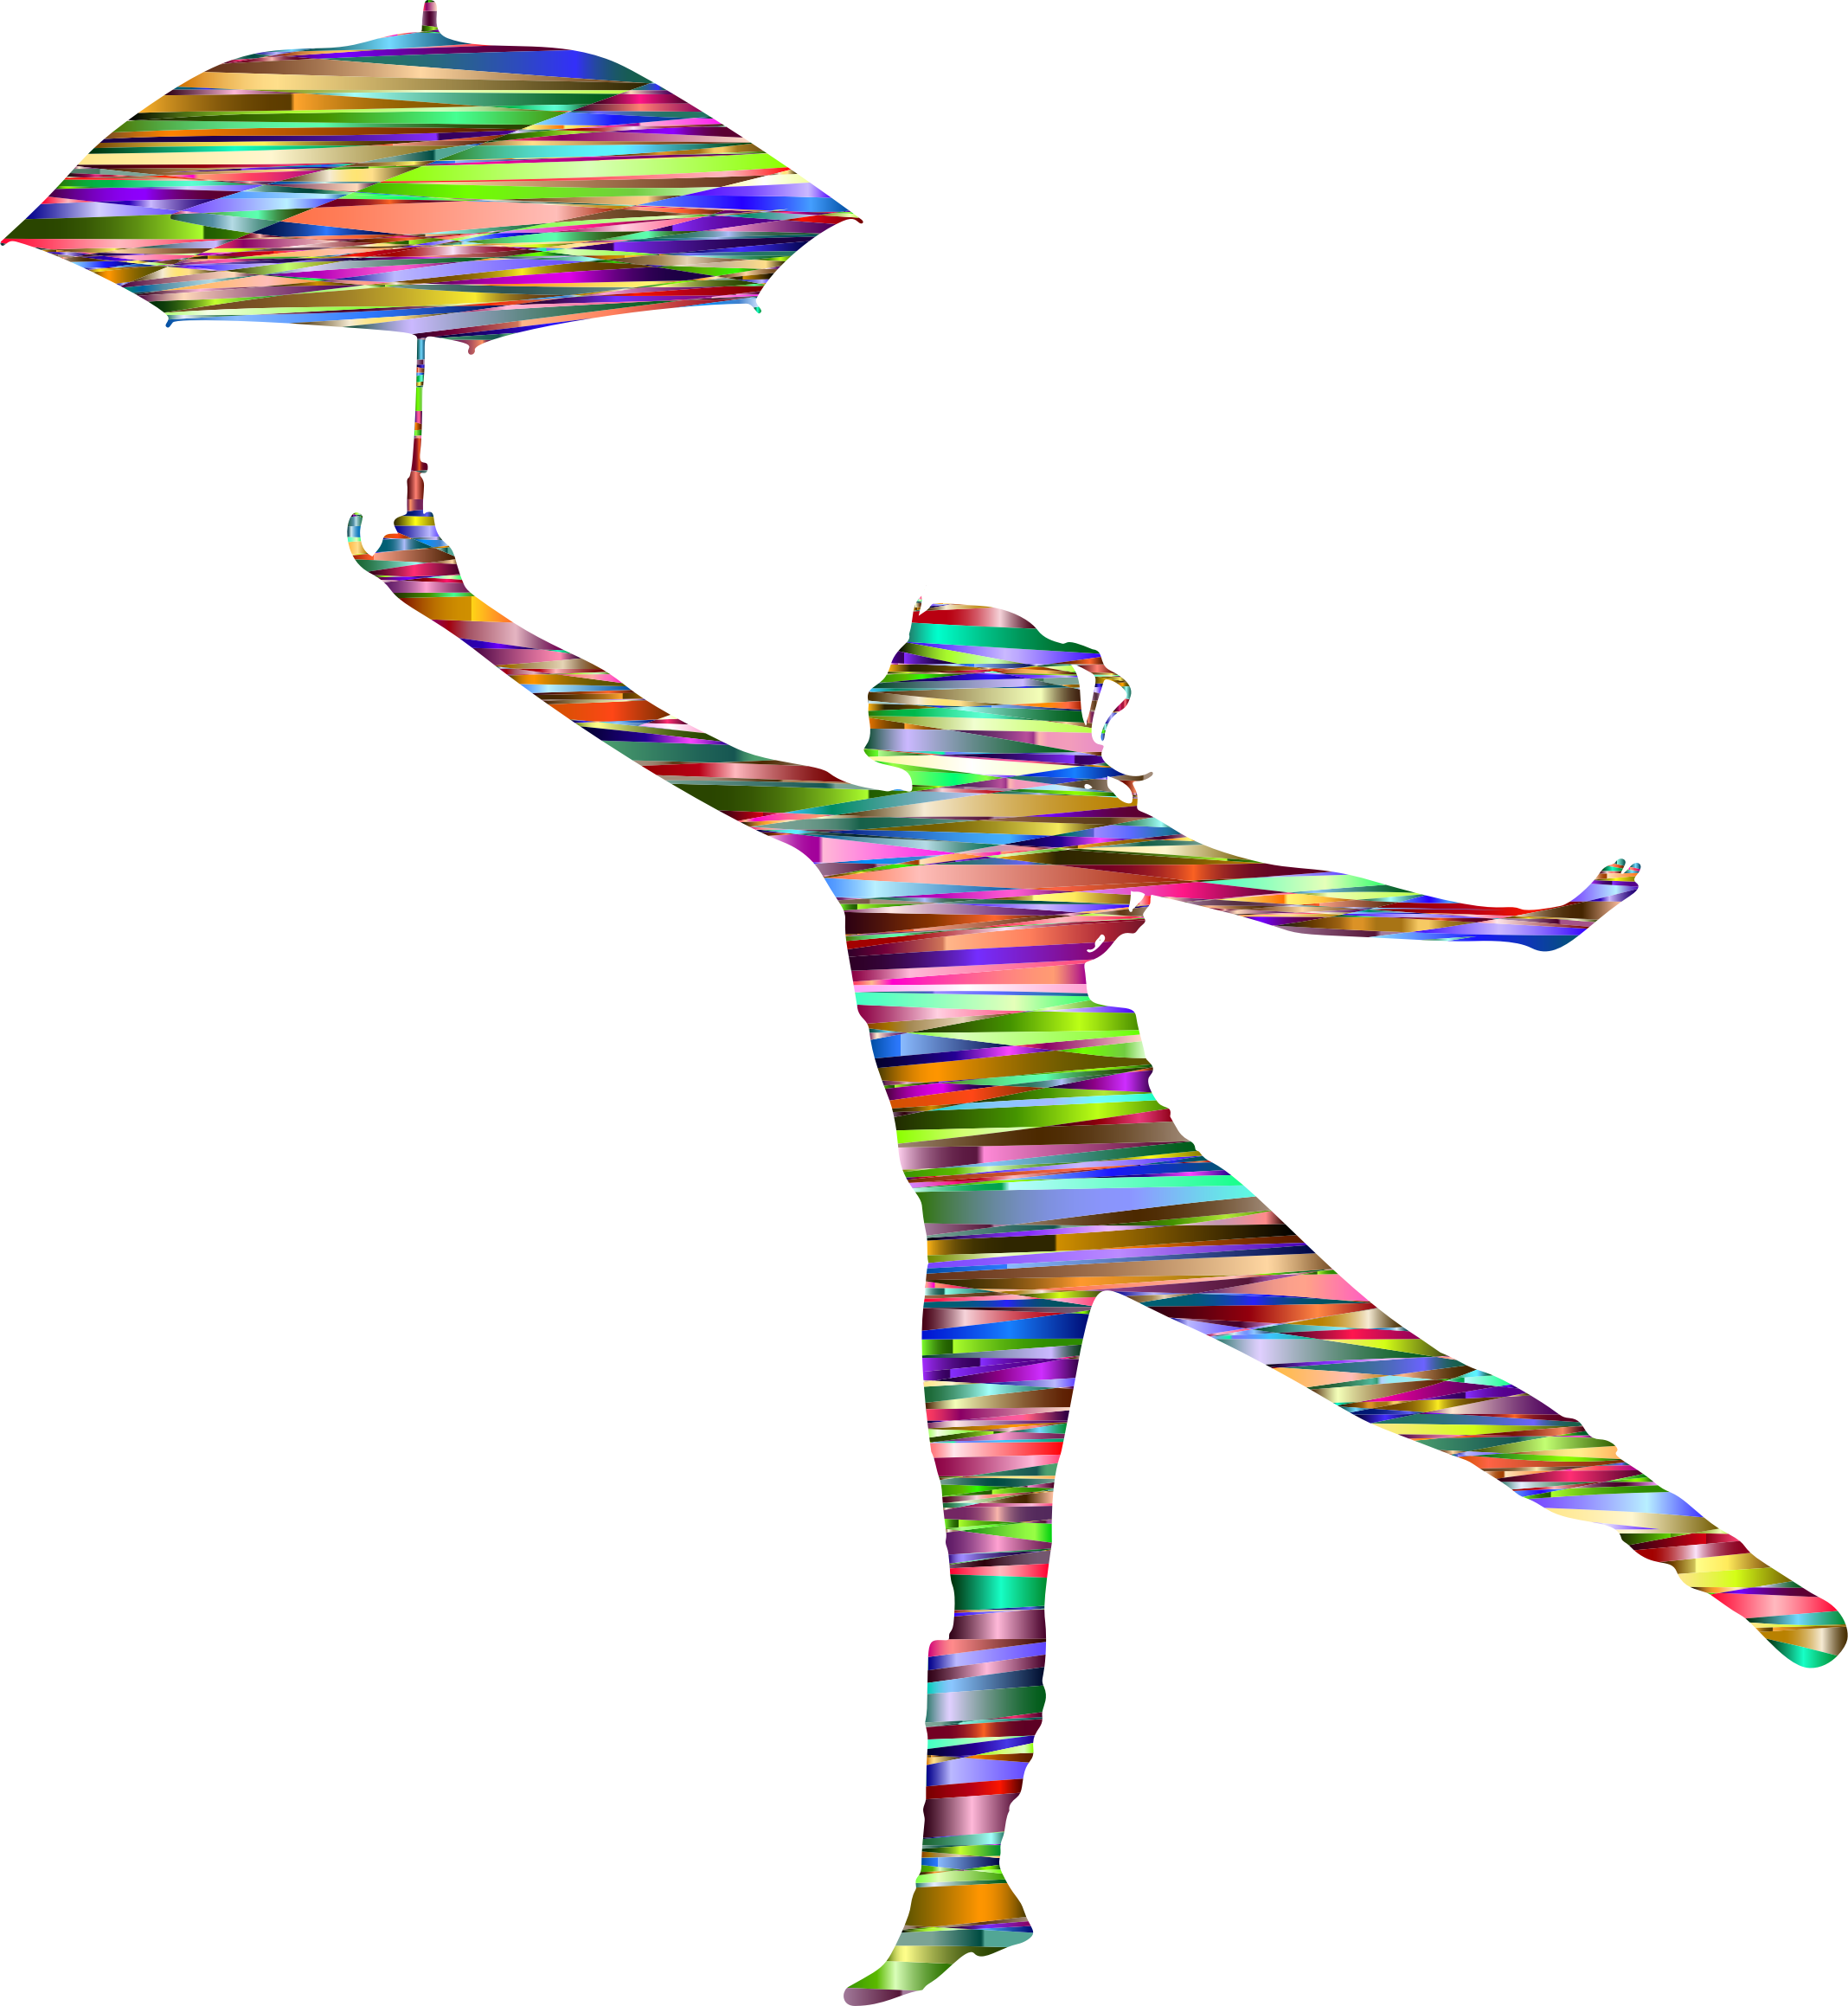 Download Abstract Woman Free Transparent Image HD HQ PNG